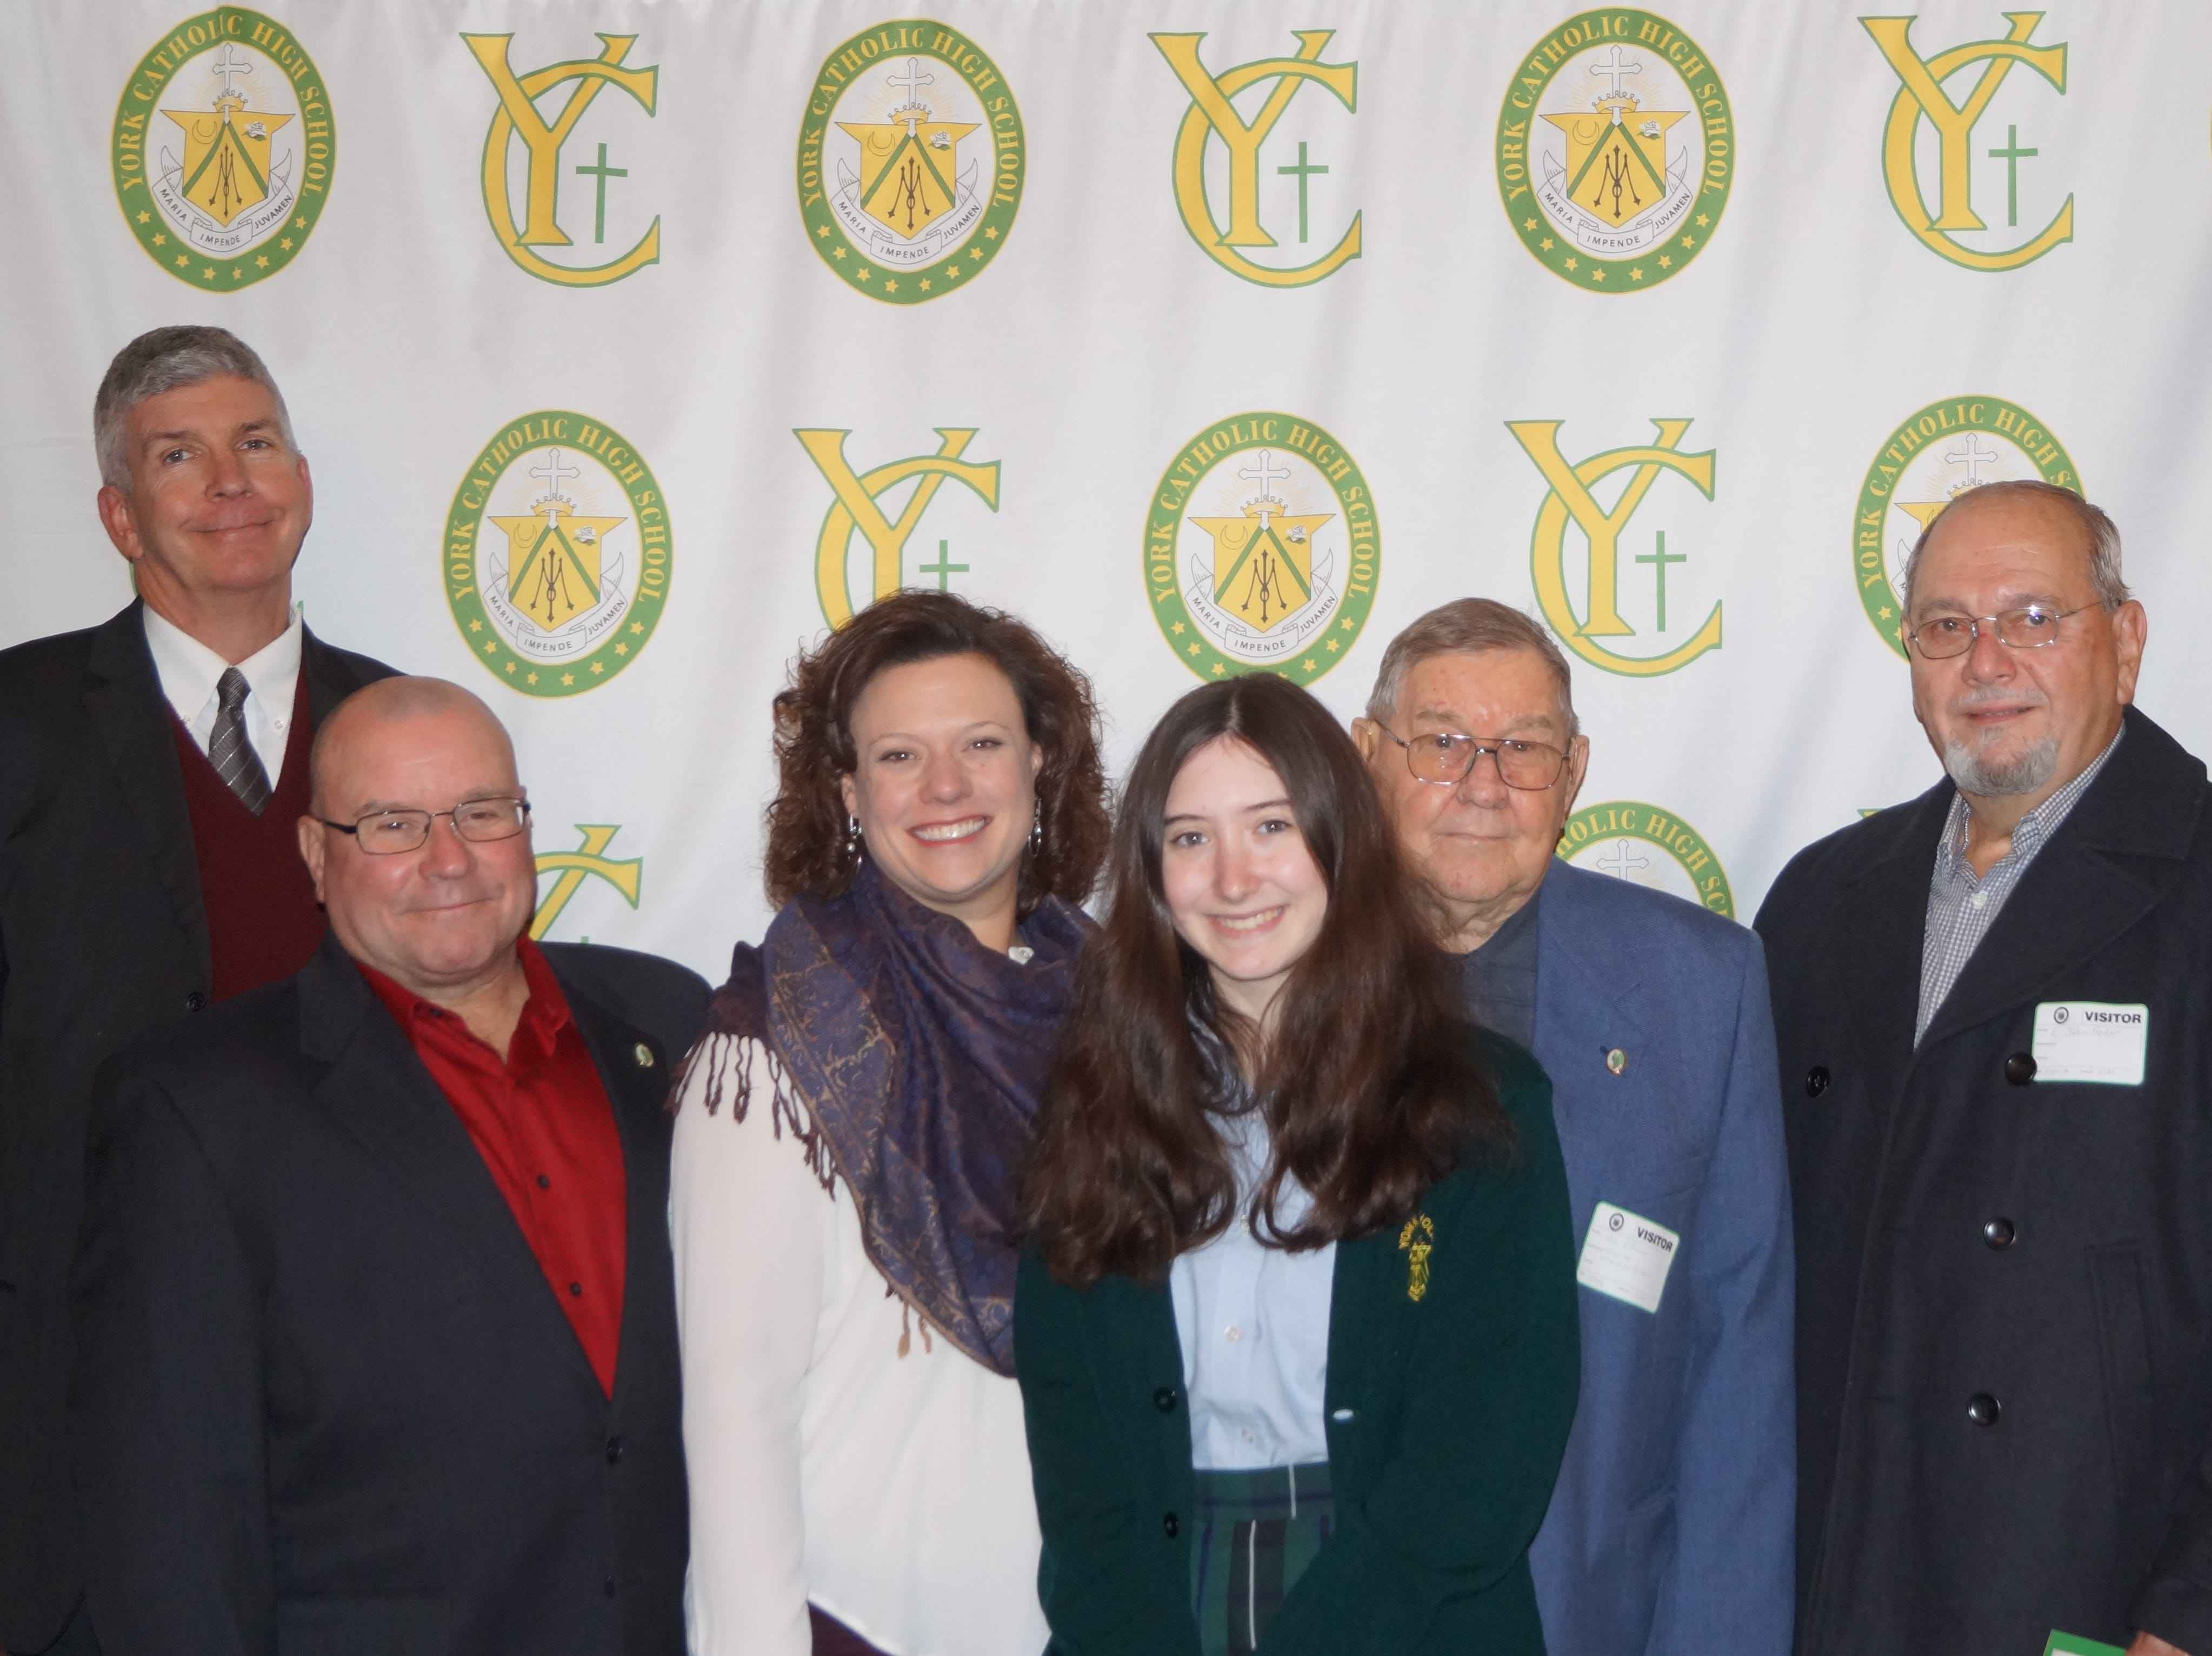 The Knights of St. Paul Roman Catholic Beneficial Association have been granting tuition assistance scholarships to students at York Catholic Junior High School and Senior High School since 2001.  The recipients for 2018-19 are Hannah Fischer and Riley Maynard. From left are Joe Keffer, Knights of St. Paul Recording Secretary; James Pichler, Knights of St. Paul Trustee; Katie Seufert, York Catholic Principal; Hannah Fischer, recipient; Paul Pichler, Knights of St. Paul Treasurer; E. John Fedor, Knights of St. Paul President; James Schneider, Knights of St. Paul Assistant Treasurer. submitted